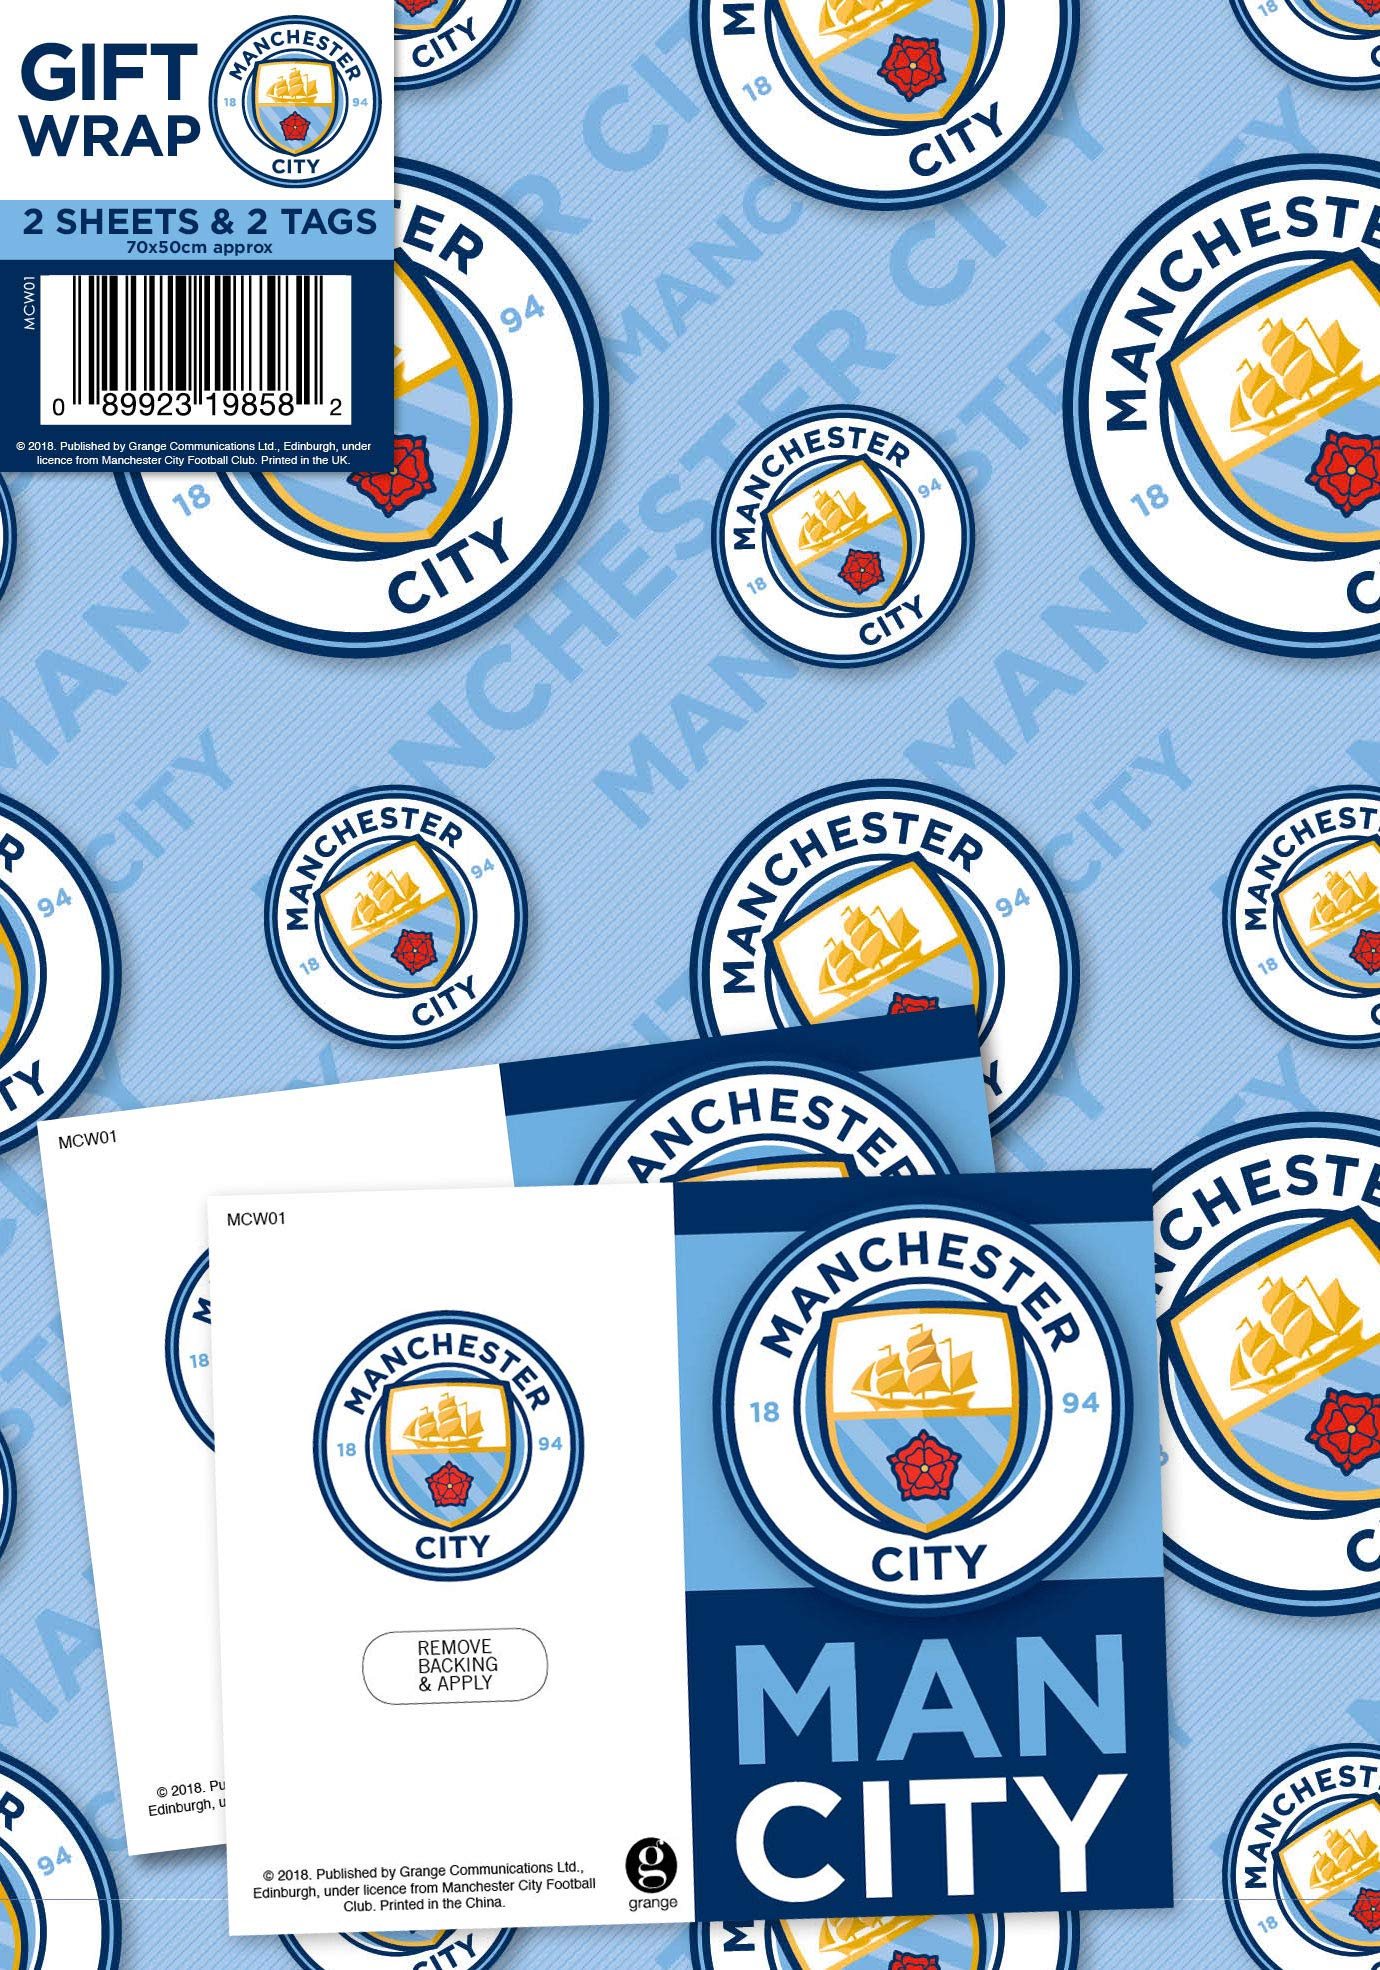 Manchester City Football Club Gift Wrapping Paper 2 Sheets 2 Tags